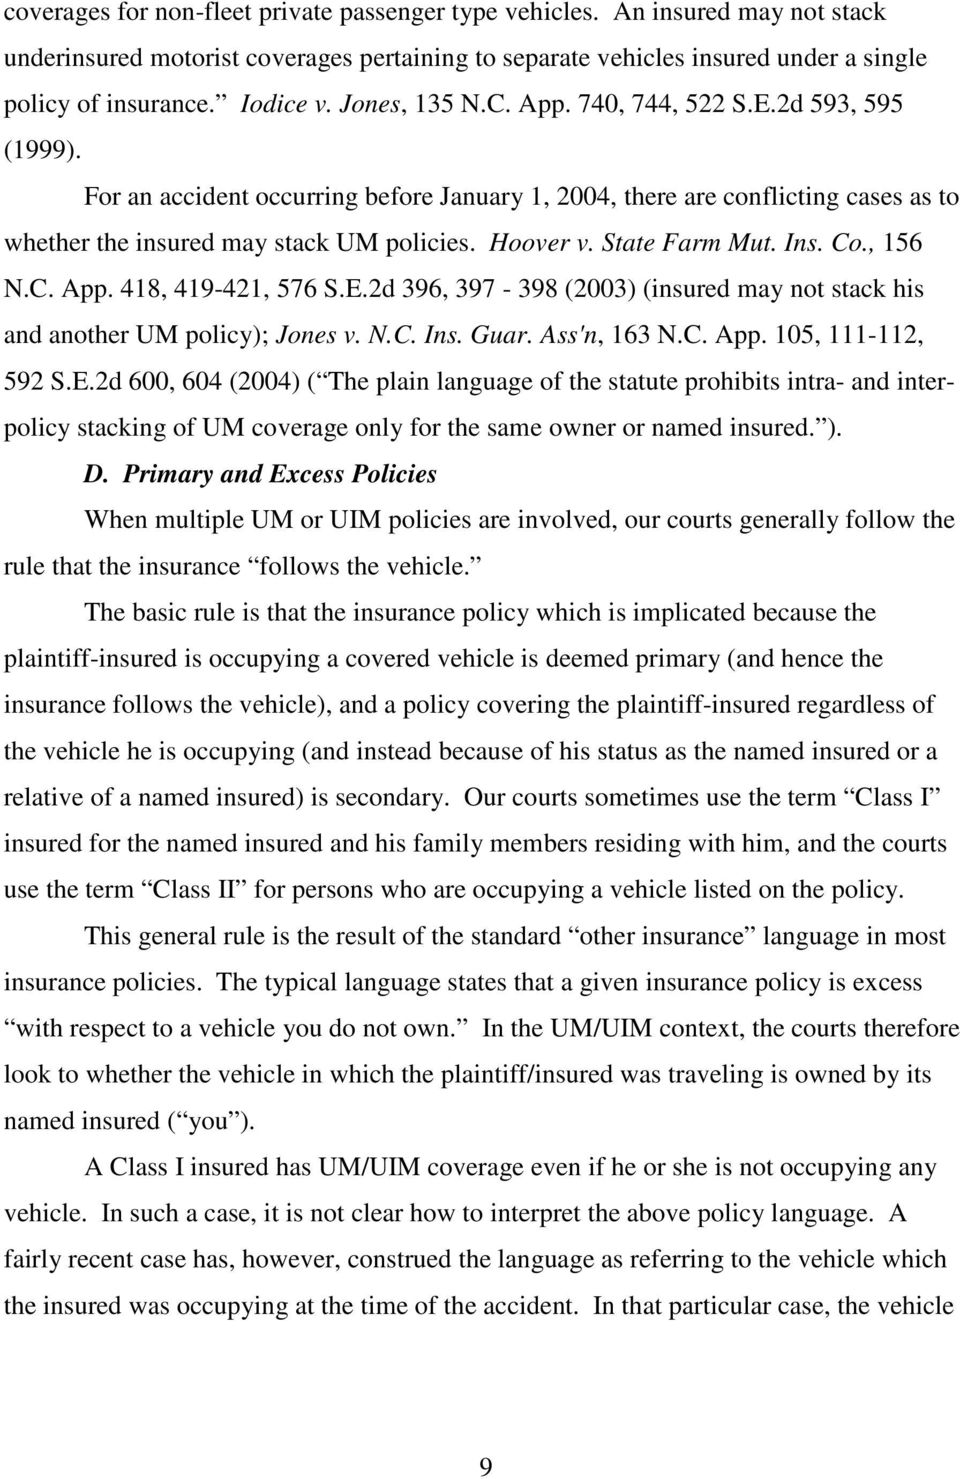 State Farm Mut. Ins. Co., 156 N.C. App. 418, 419-421, 576 S.E.2d 396, 397-398 (2003) (insured may not stack his and another UM policy); Jones v. N.C. Ins. Guar. Ass'n, 163 N.C. App. 105, 111-112, 592 S.